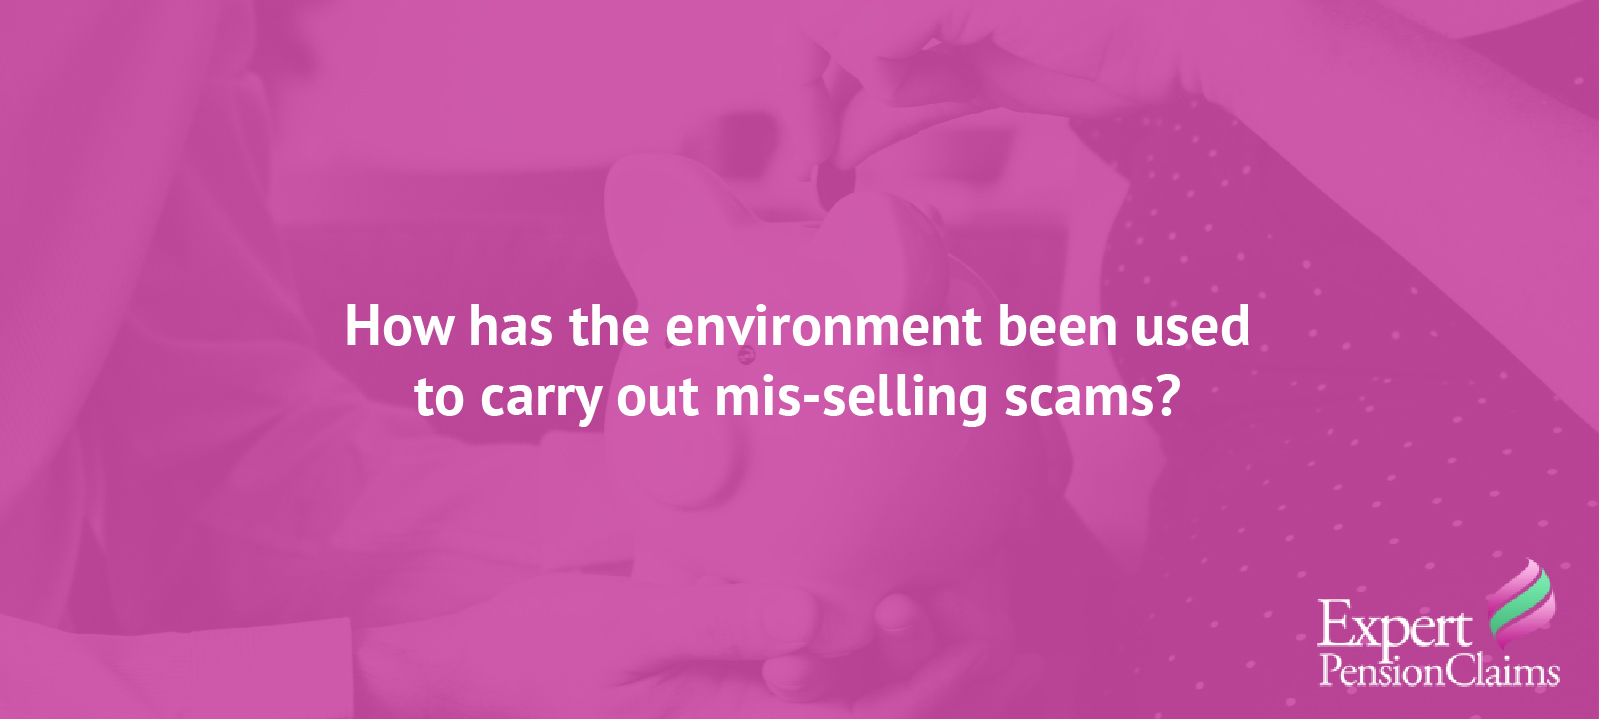 How the environment has been used to carry out mis-selling scams